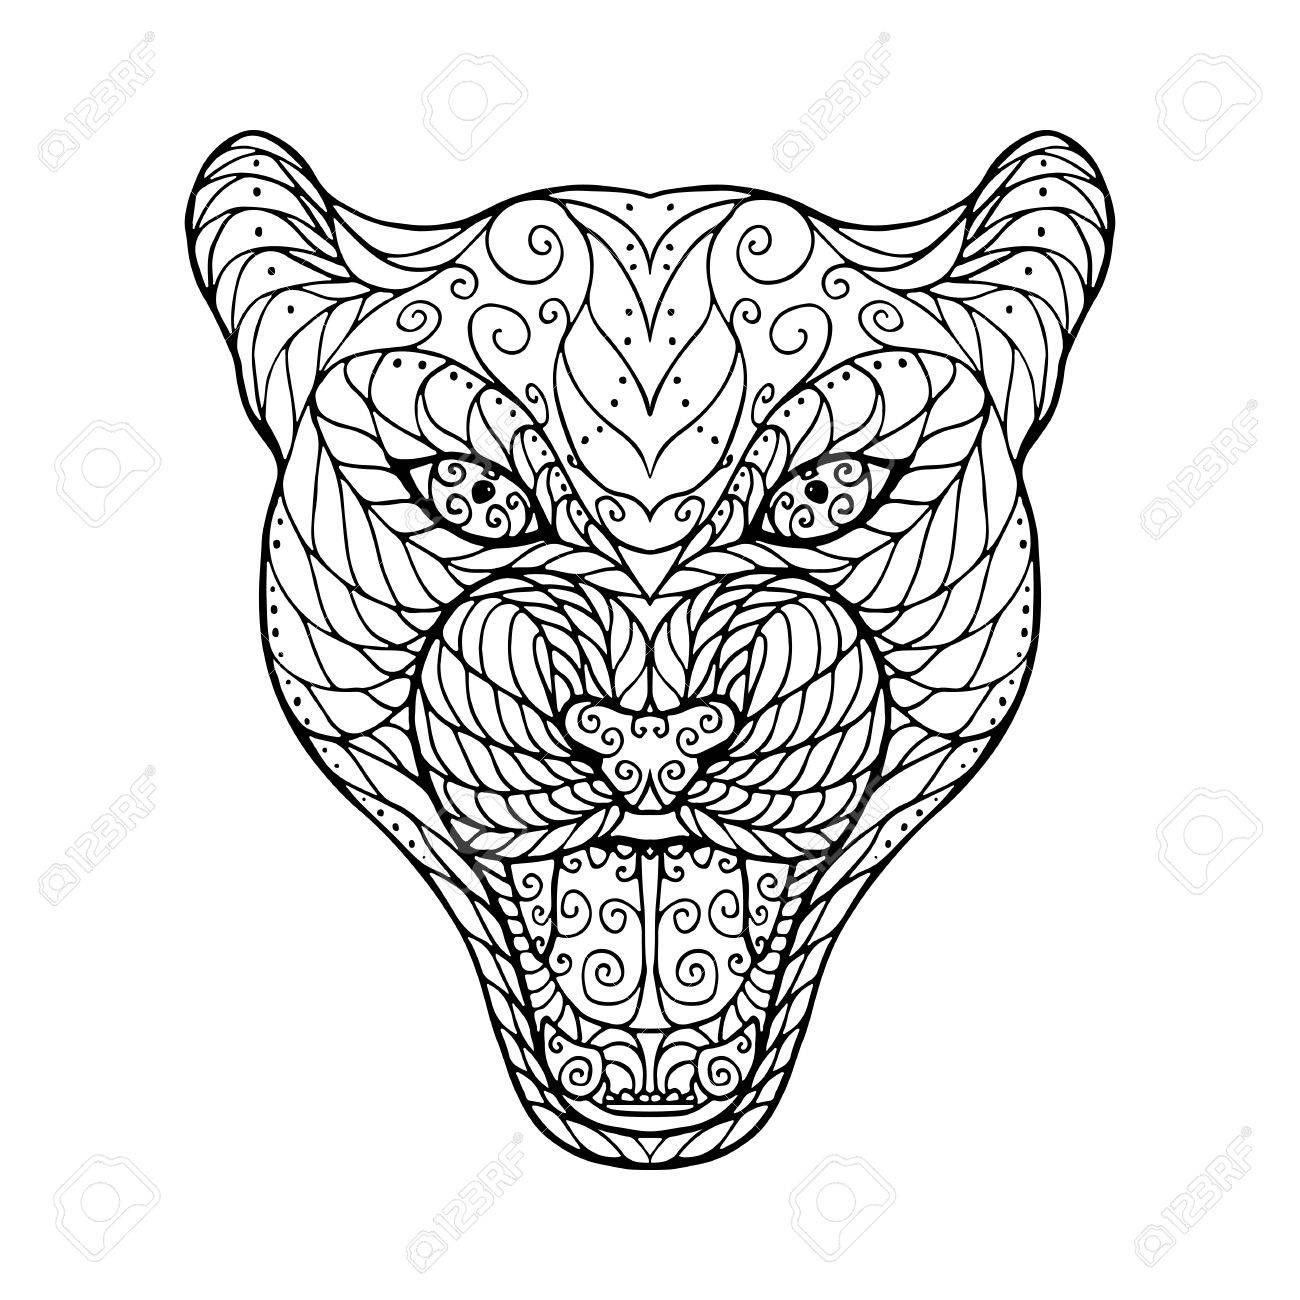 Zen Tangle Head Of Jaguar For Adult Anti Stress Coloring Page